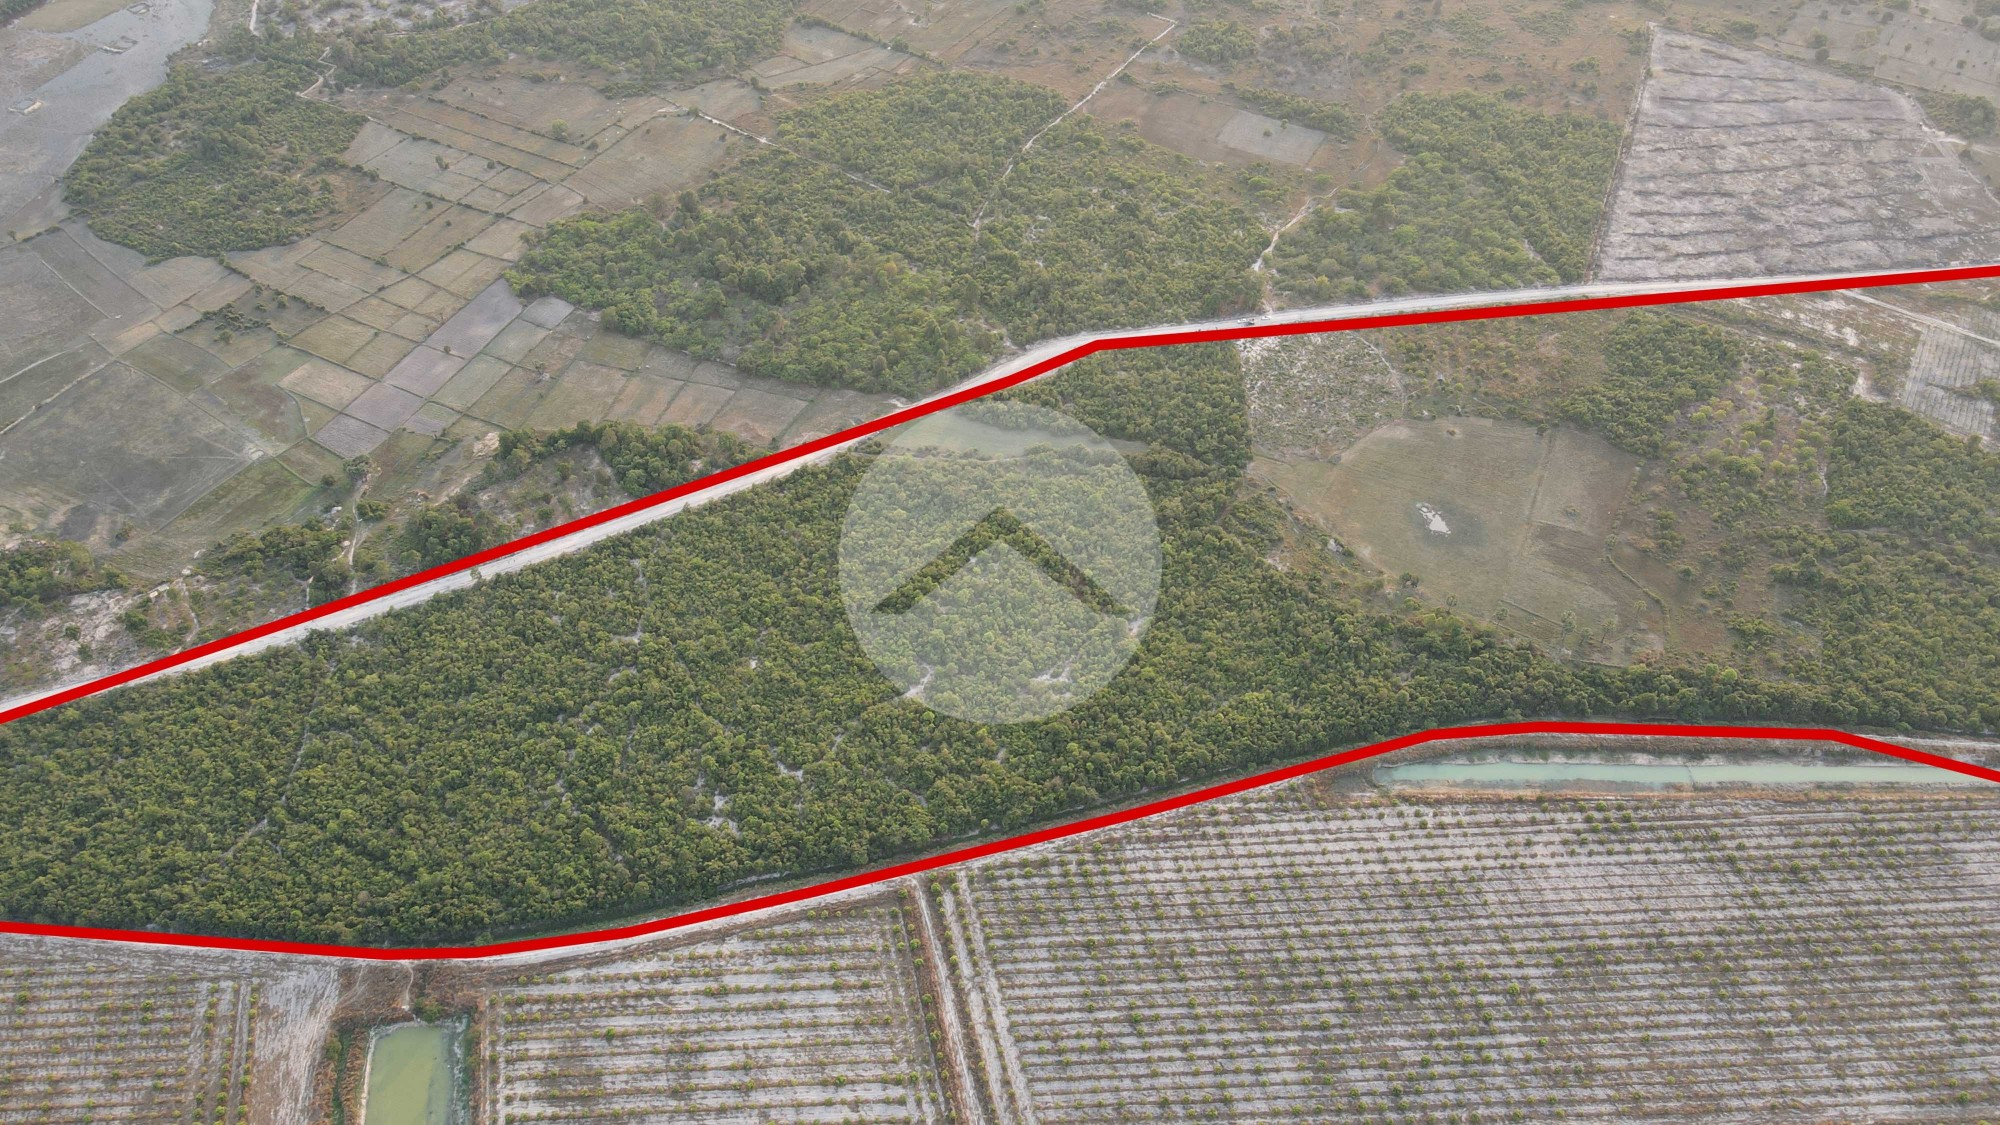 1 Hectare Land For Sale - Banteay Srei, Siem Reap